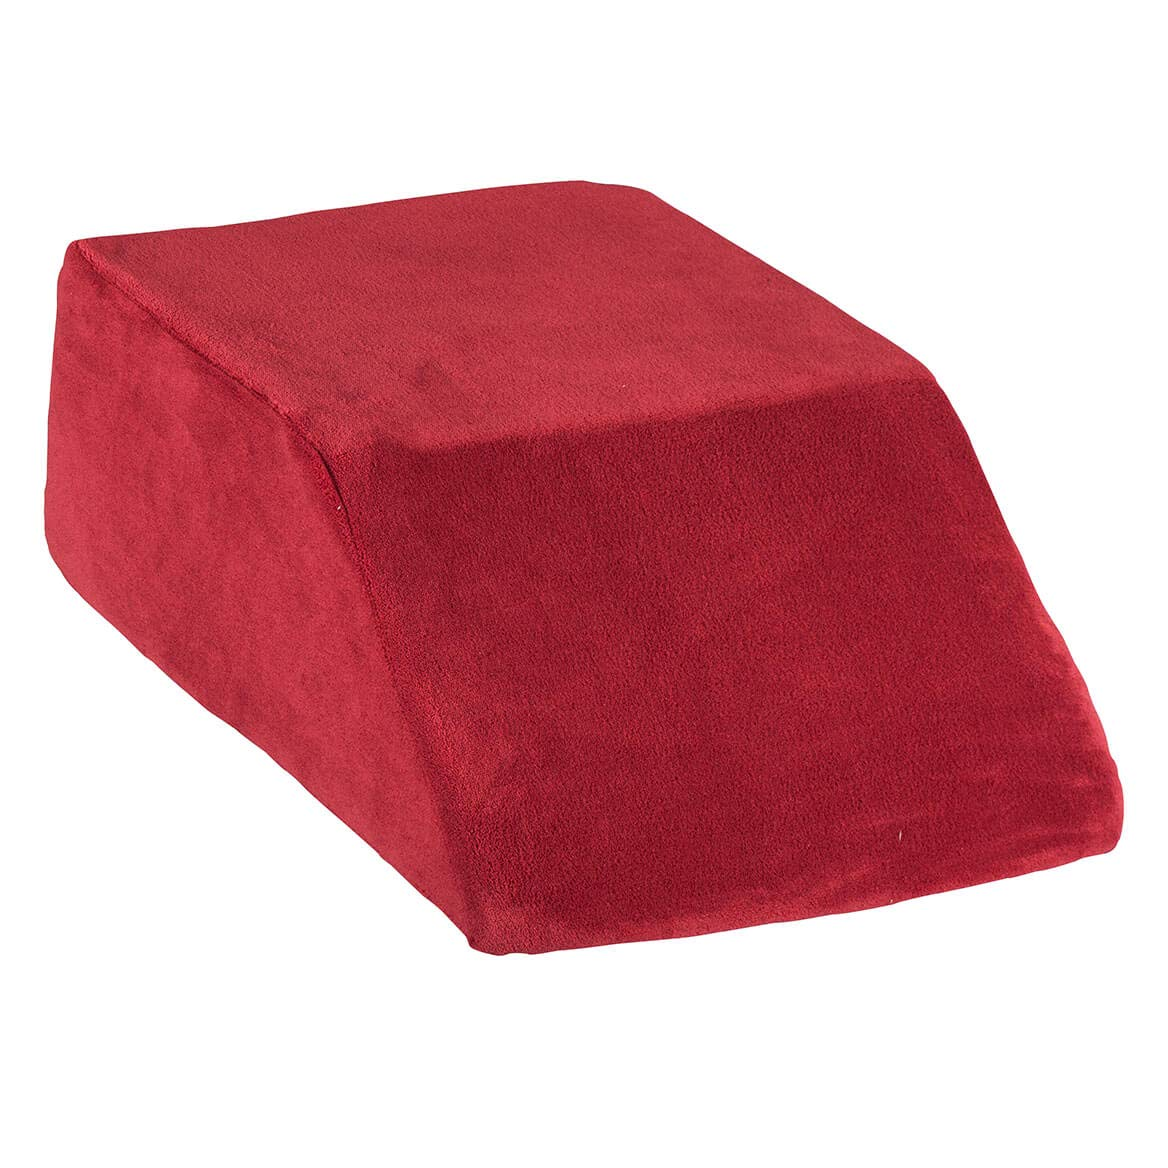 LivingSURE Plush Cover for Leg Lift Wedge Support Pillow, Zippered Pillow Cover, Burgundy, Polyester by Fox Valley Traders